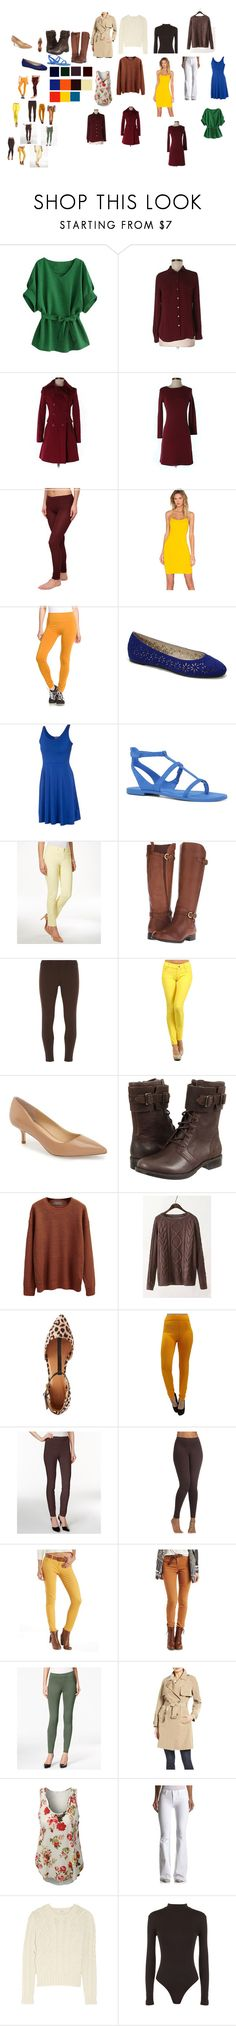 Draft by hind-arradi on Polyvore featuring Donna Mizani, ibex, ASOS, Carven, LOFT, Madewell, Kenneth Cole Reaction, Hudson Jeans, Charter Club and Style & Co.